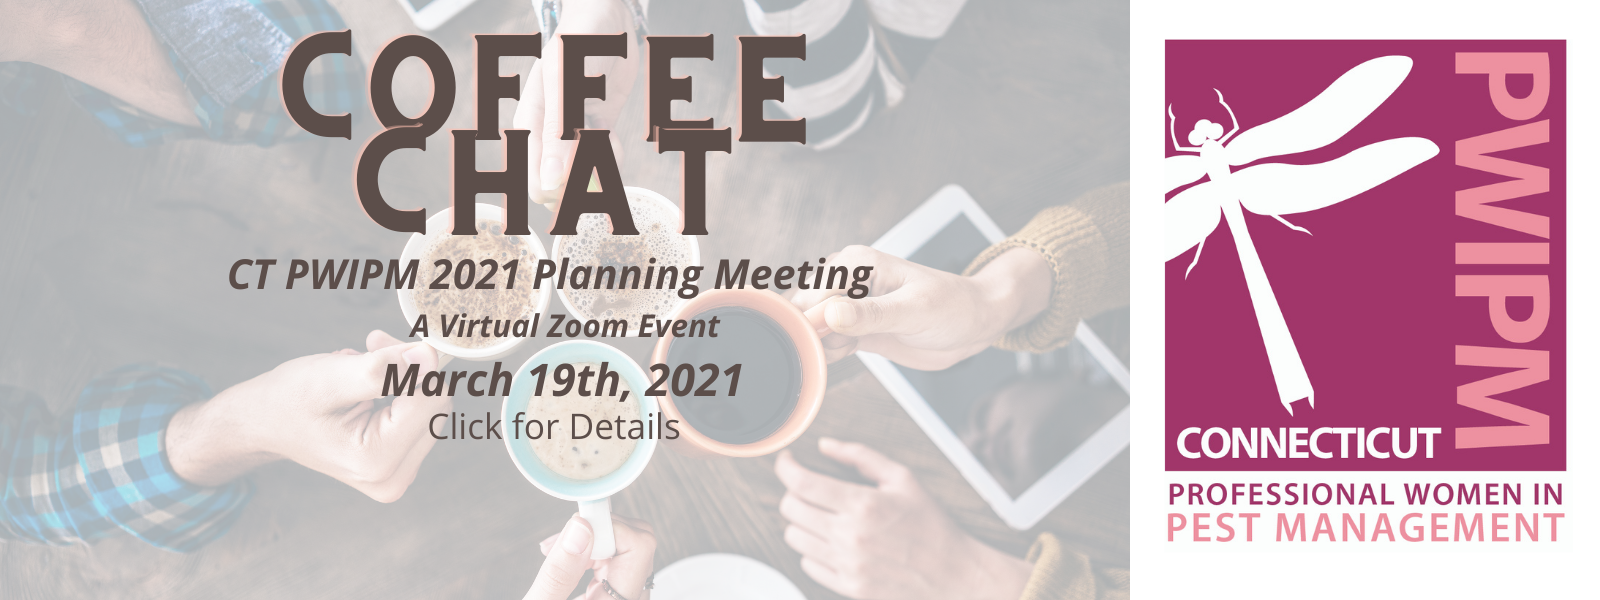 CTPWPIPM Coffee Chat 2021 BANNER.png